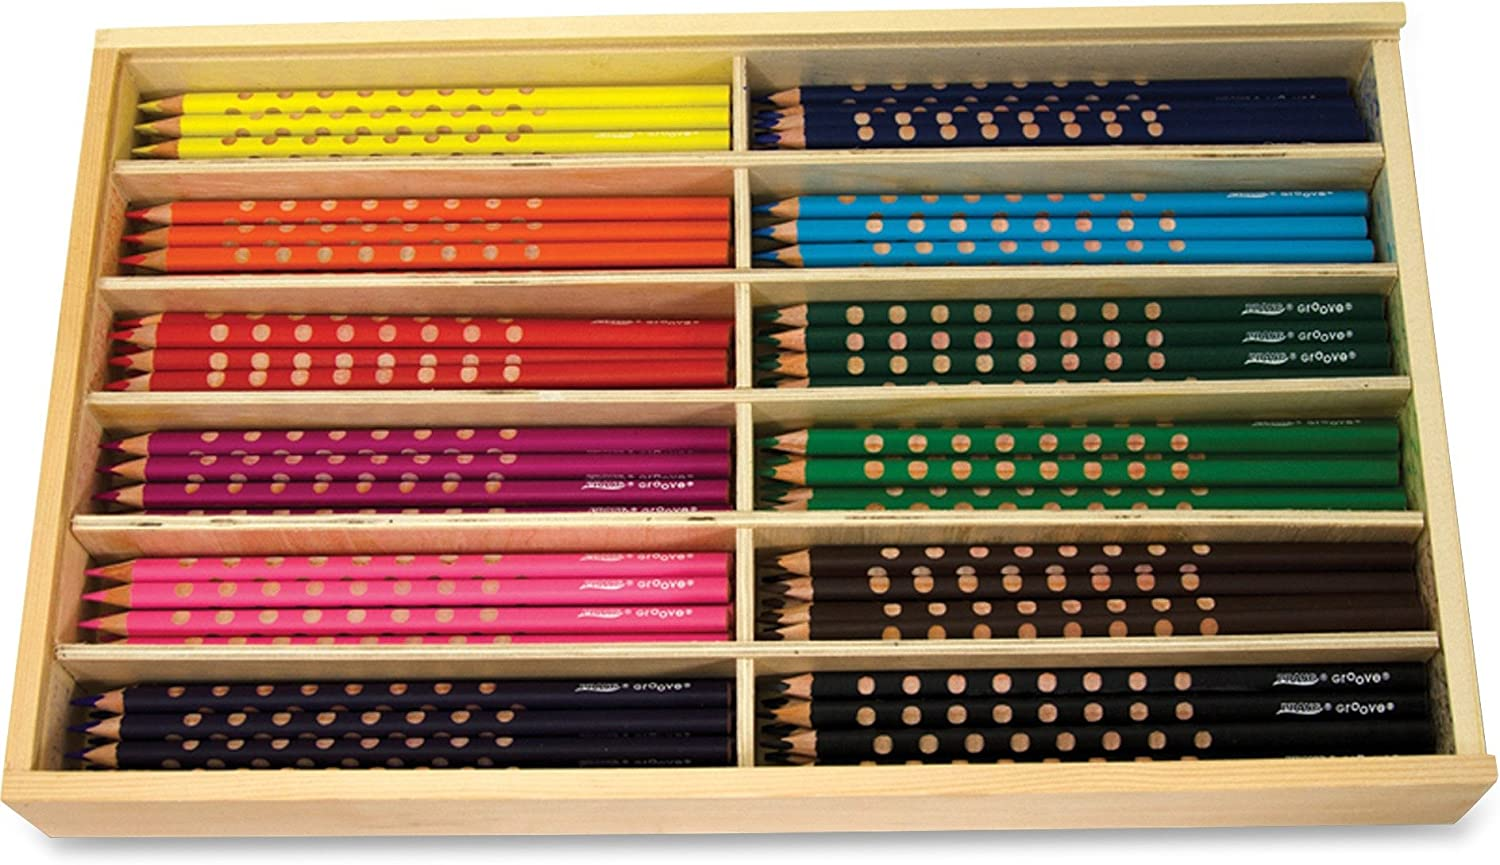 Prang Groove 3.3mm Presharpened Core Colored Pencils, Set of 144 Pencils, 12 Each of 12 Assorted Colors with Wooden Storage Box (28144) by Prang